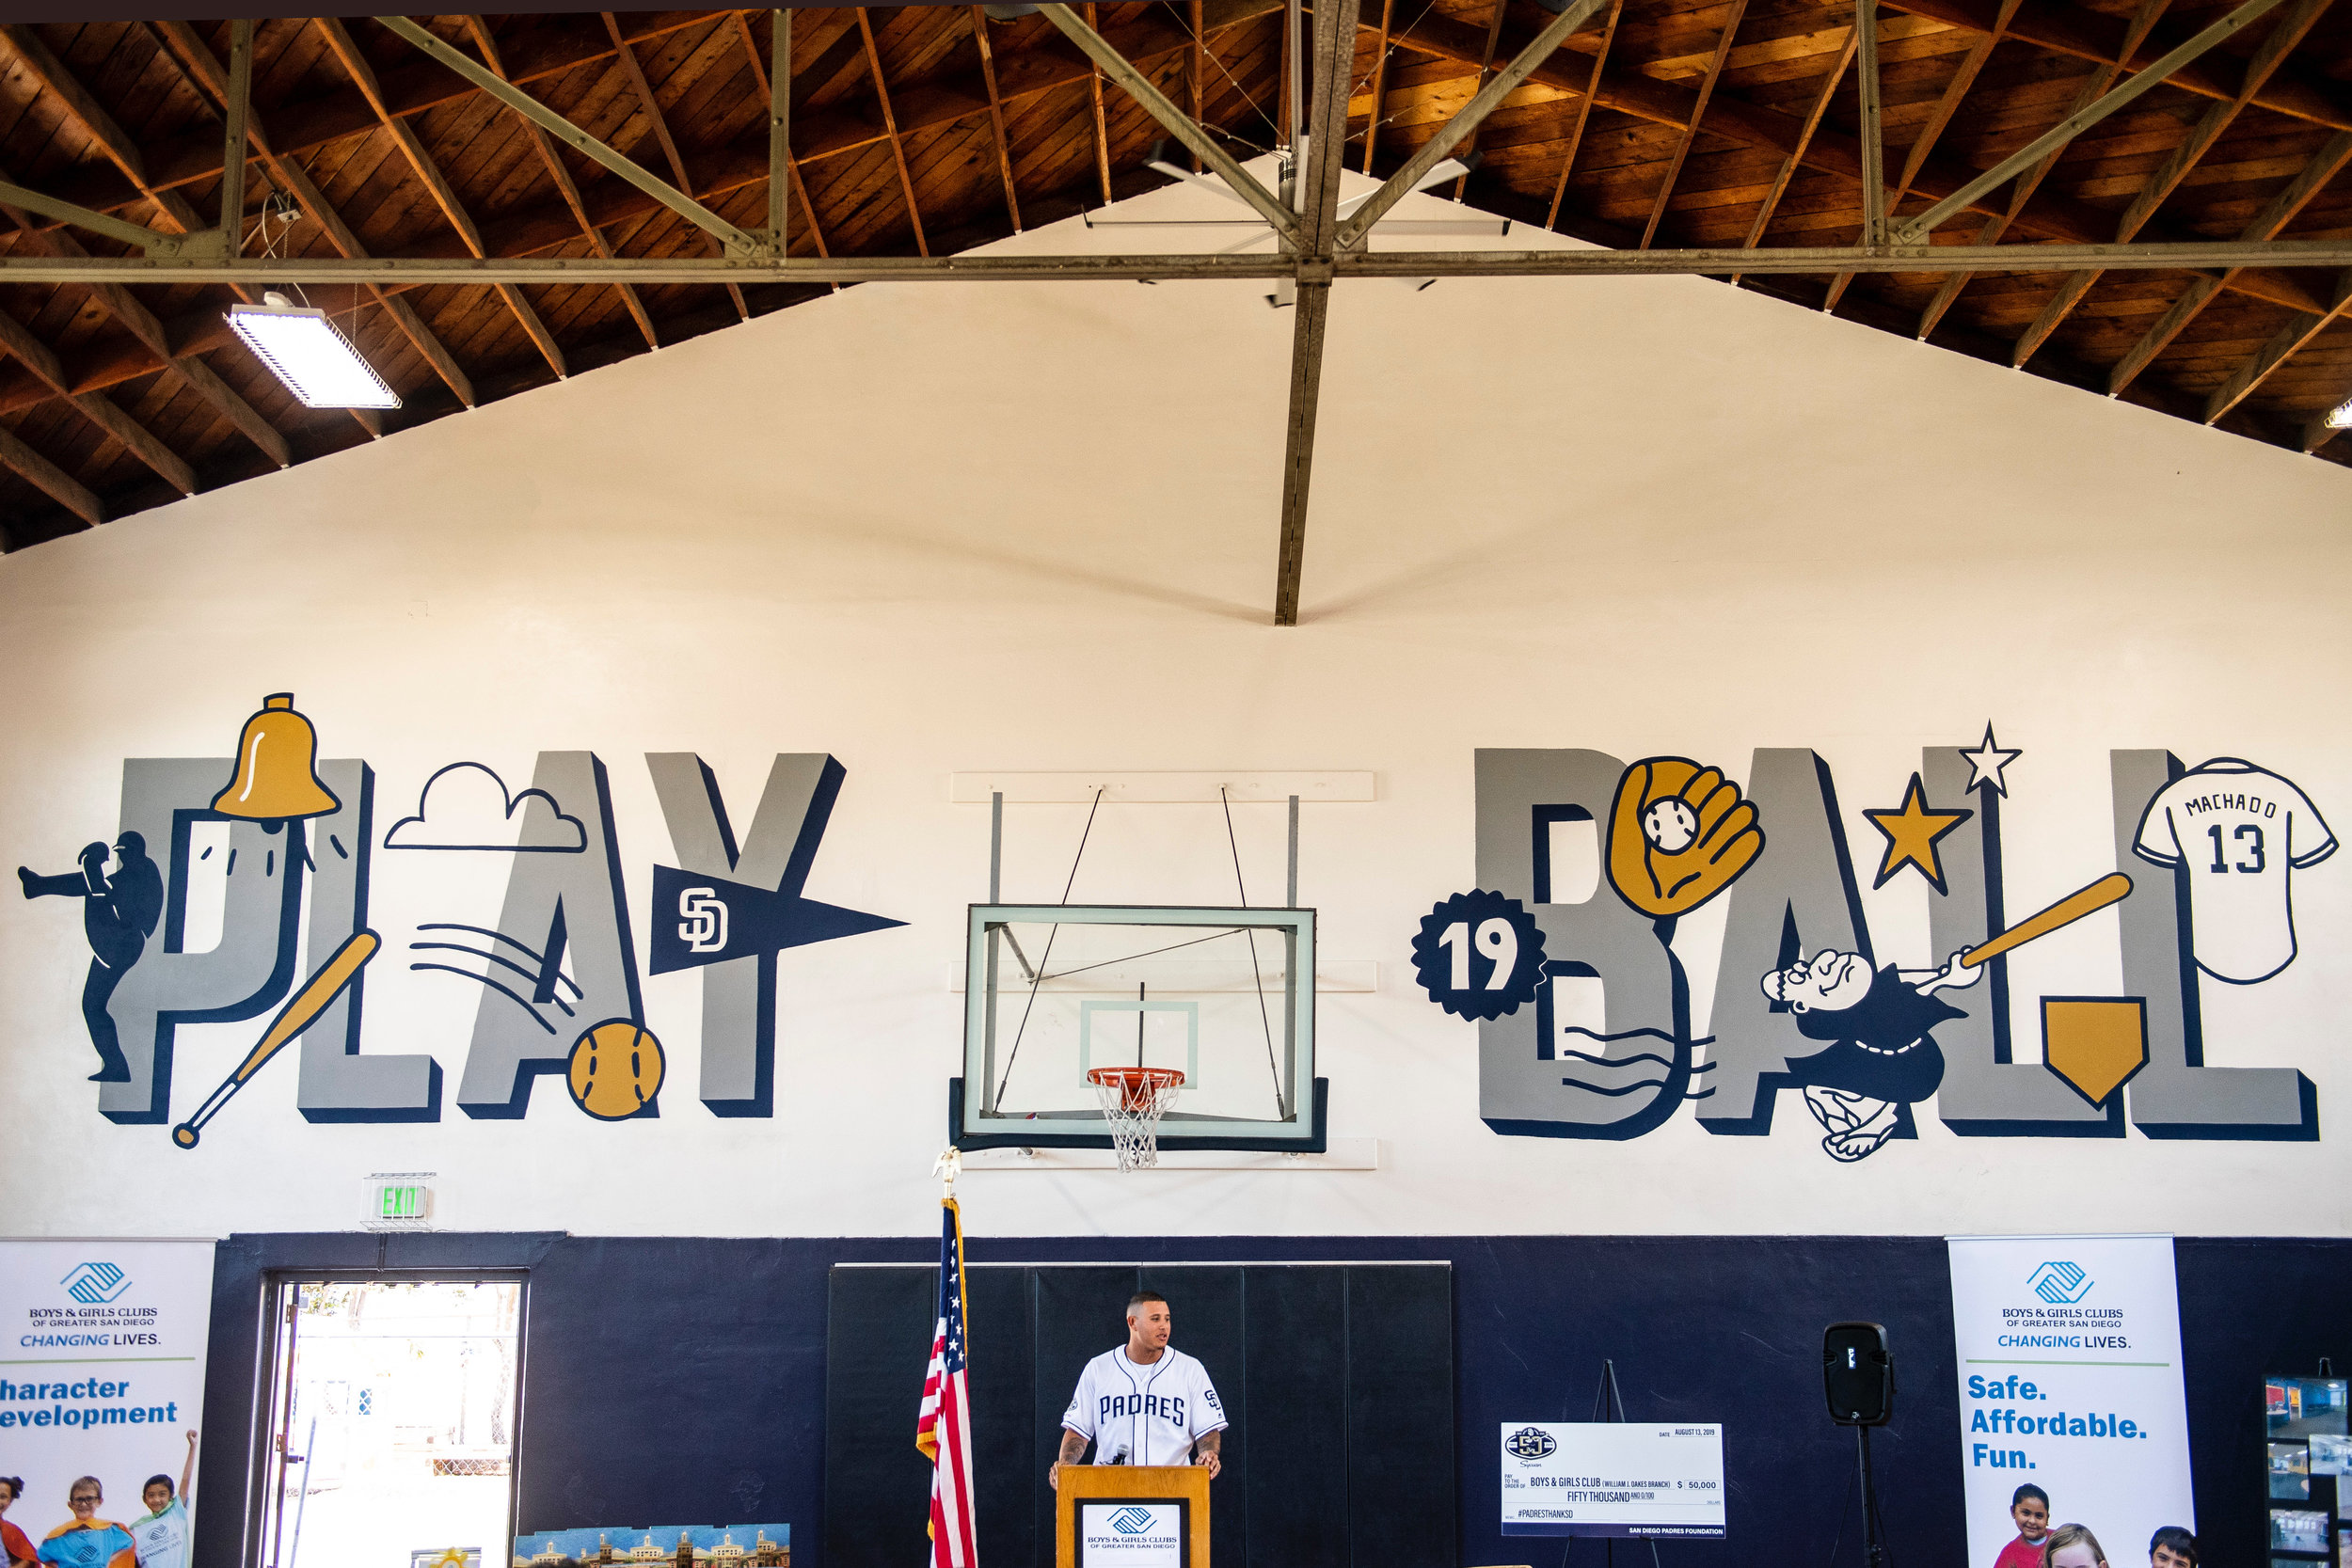 Padres Play Ball Custom hand painted Mural at Boys and Girls Clubs